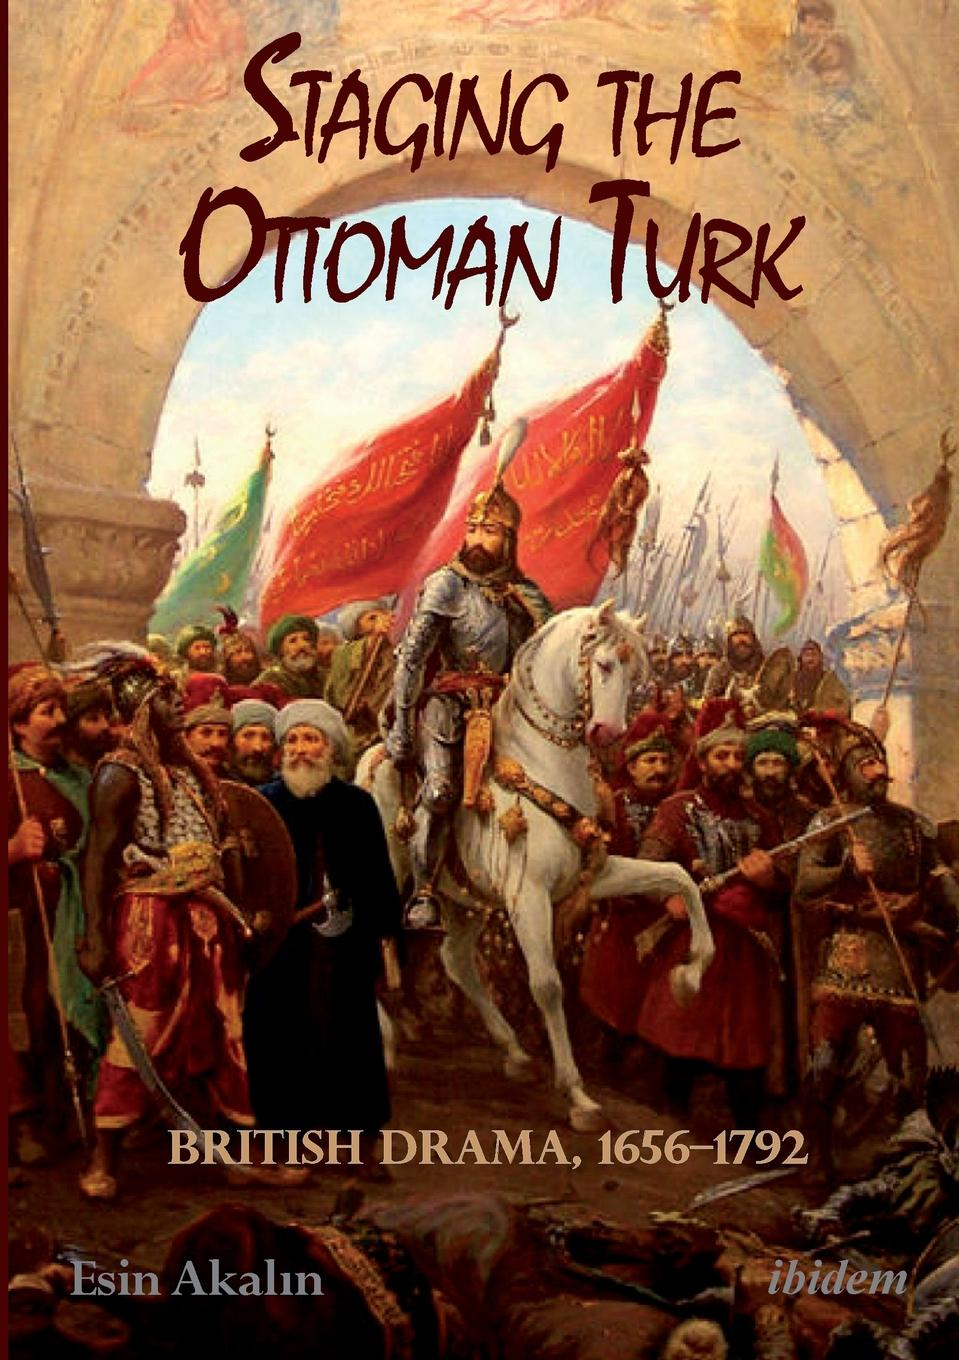 Esin Akalin Staging the Ottoman Turk. British Drama, 1656-1792 leah dennison do i look funny in this an investigation into the perception and representation of female comedians on the stand up circuit and their audiences